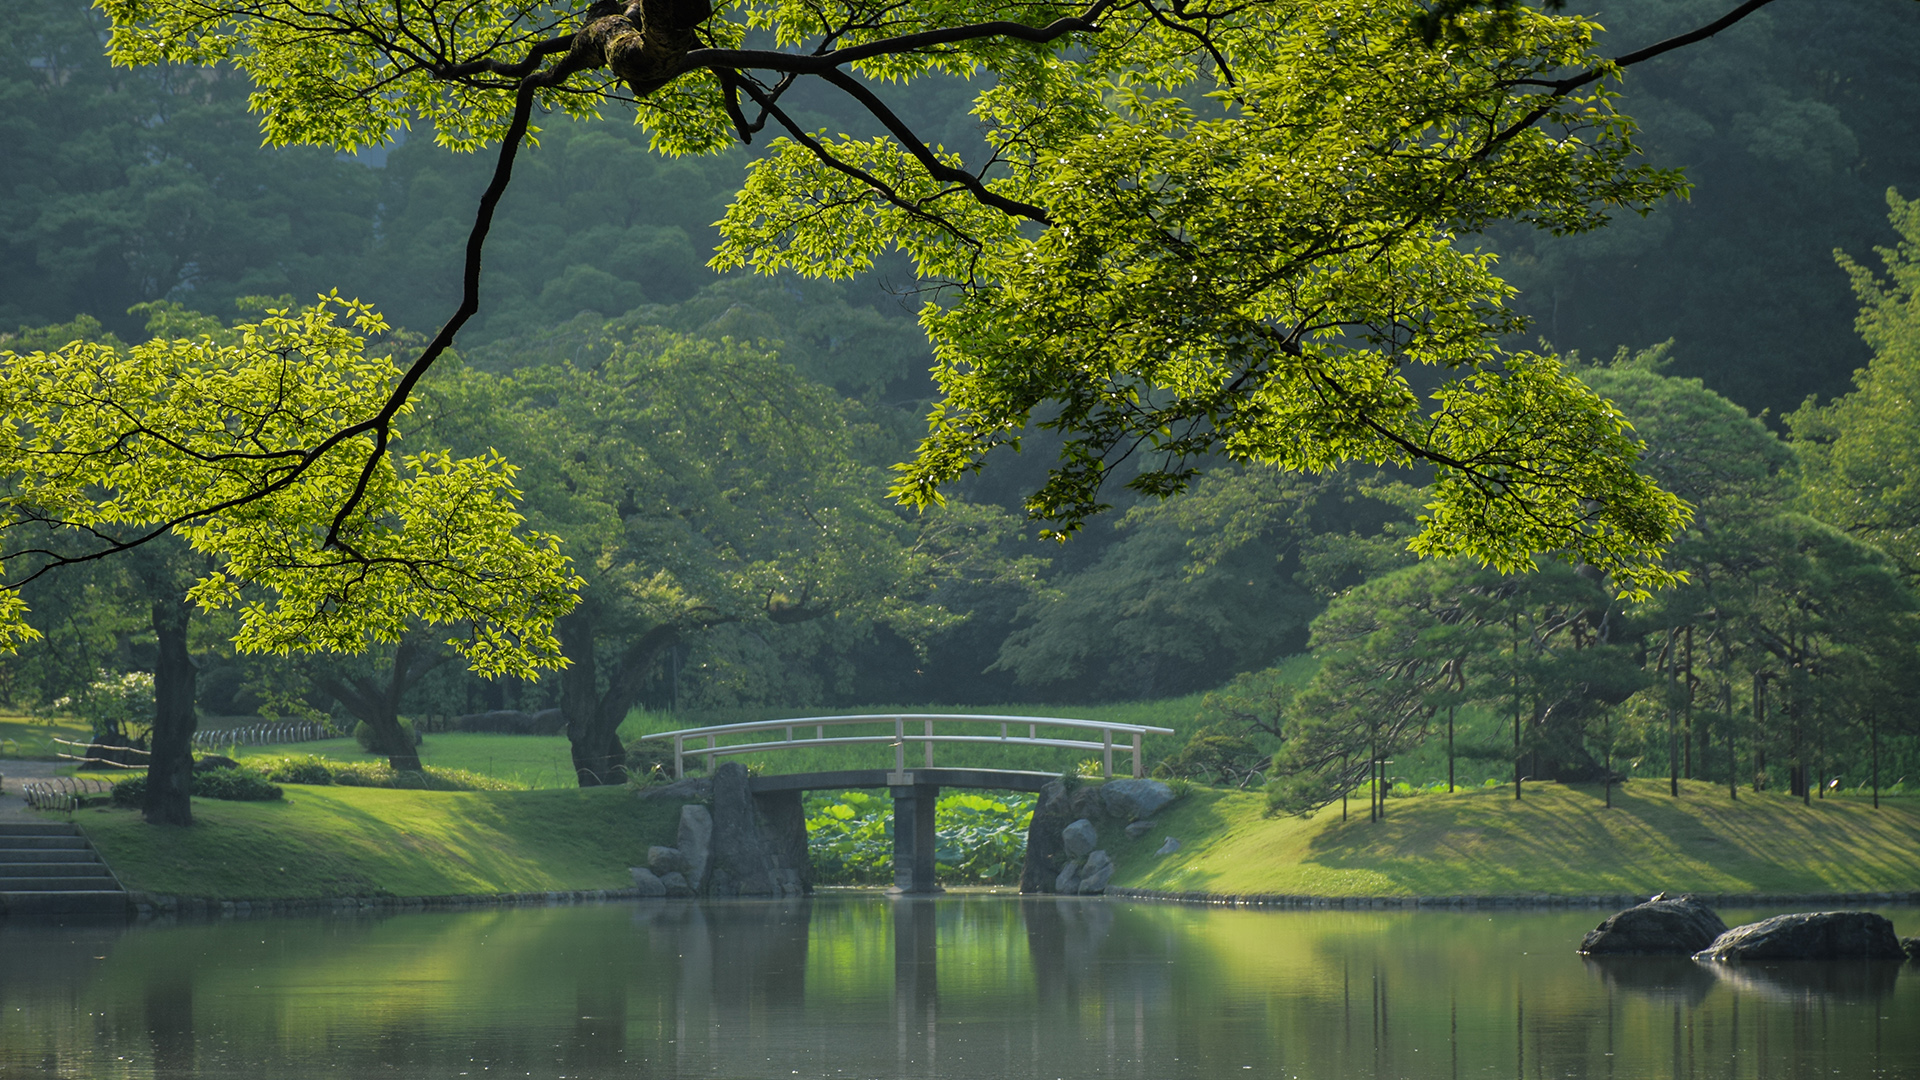 General 1920x1080 trees stairs bridge leaves grass lake forest reflection Japan Tokyo